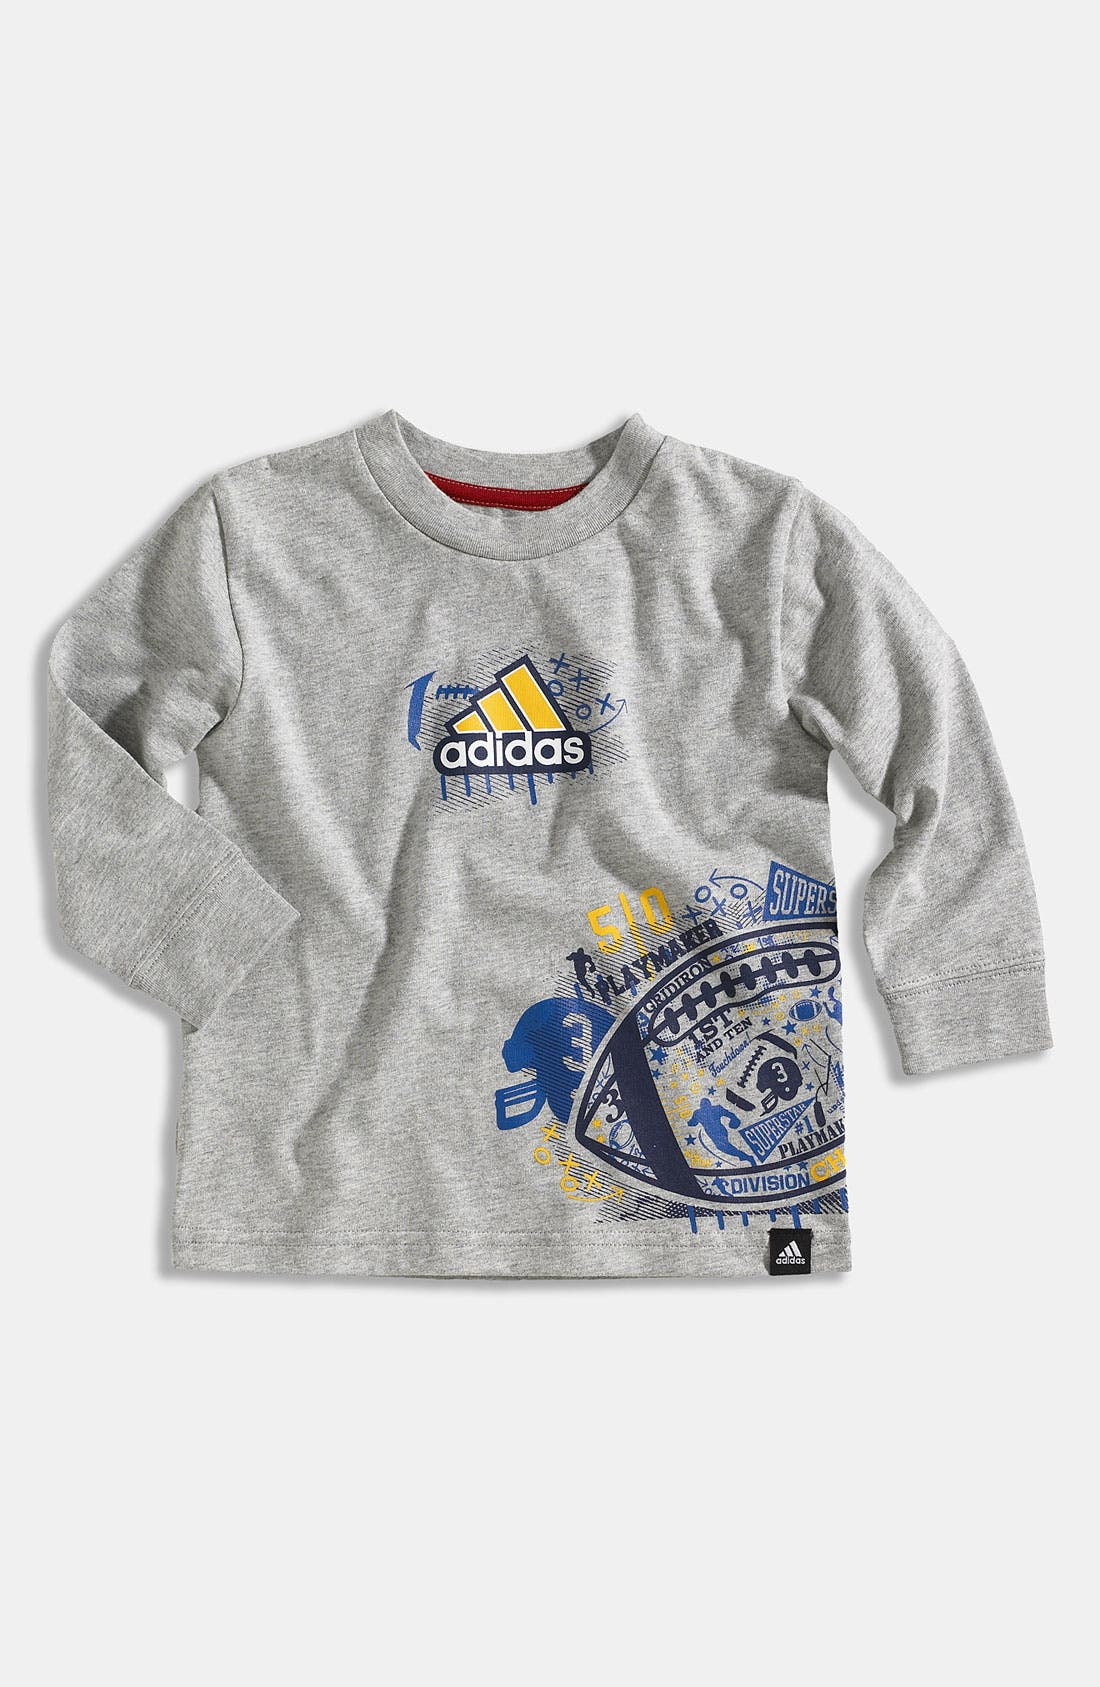 Alternate Image 1 Selected - adidas 'Playbook Wrap' T-Shirt (Infant)